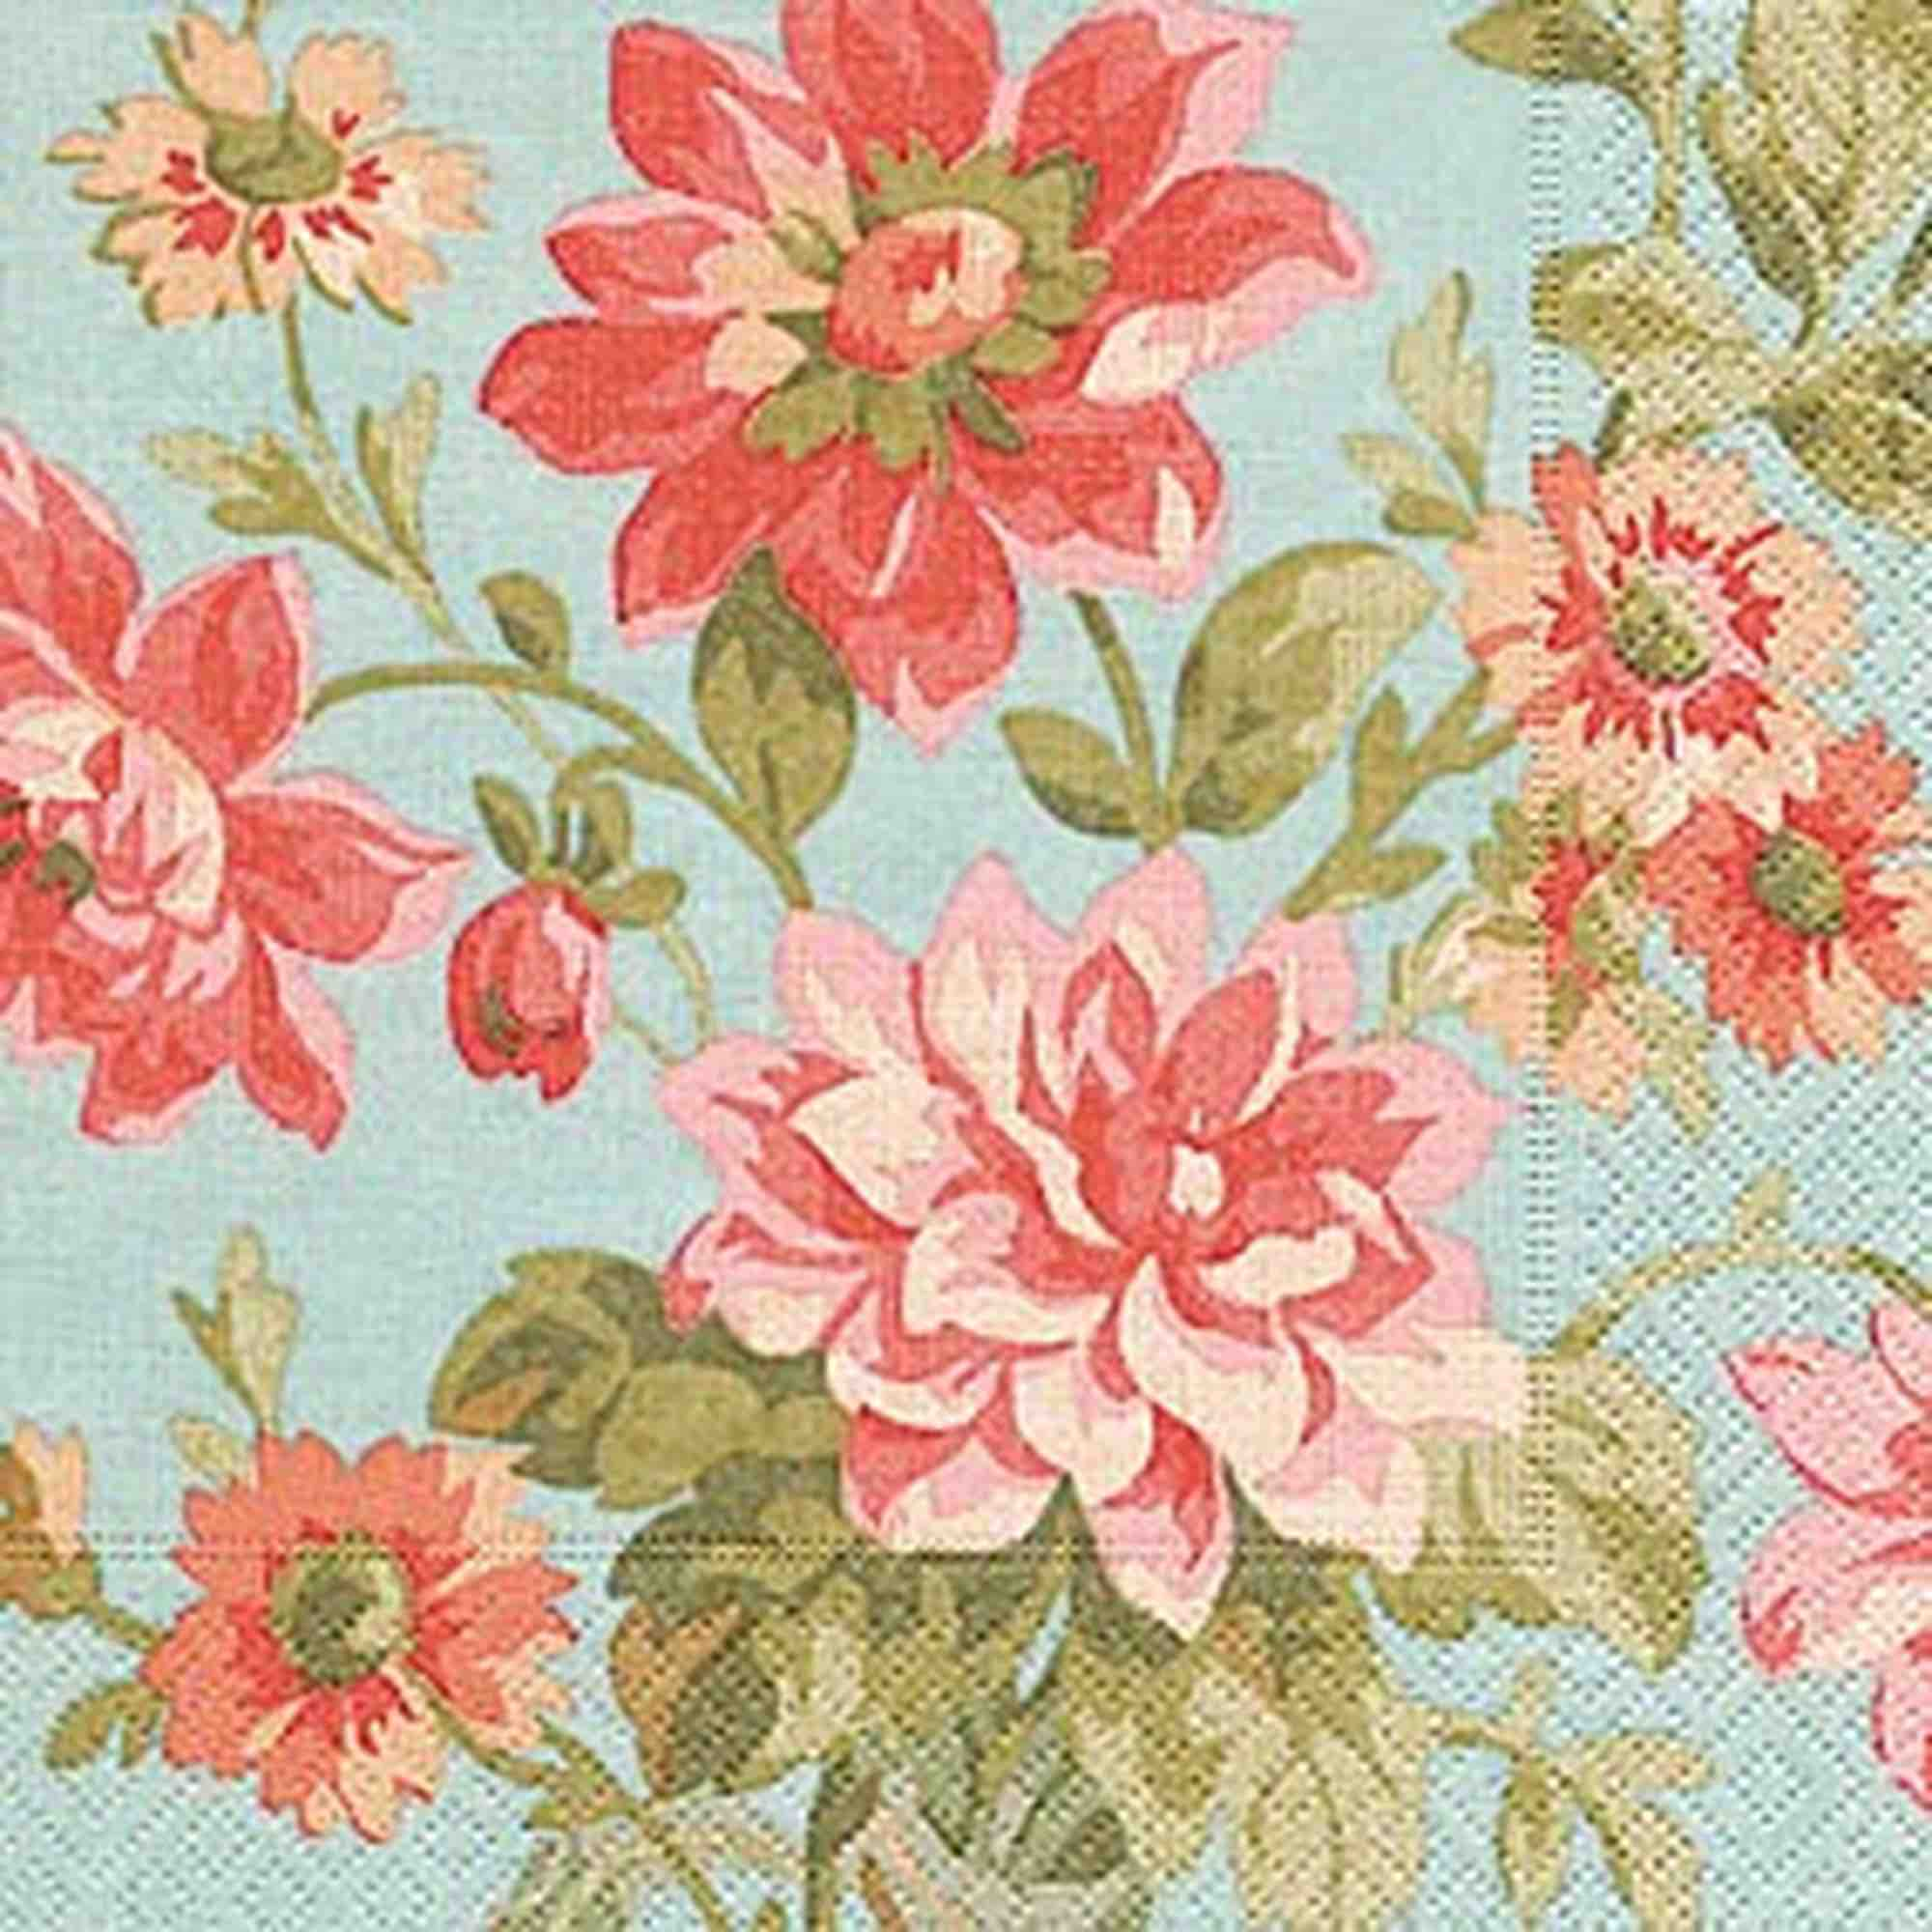 Cocktail Napkins | Painted Dahlias 20pk